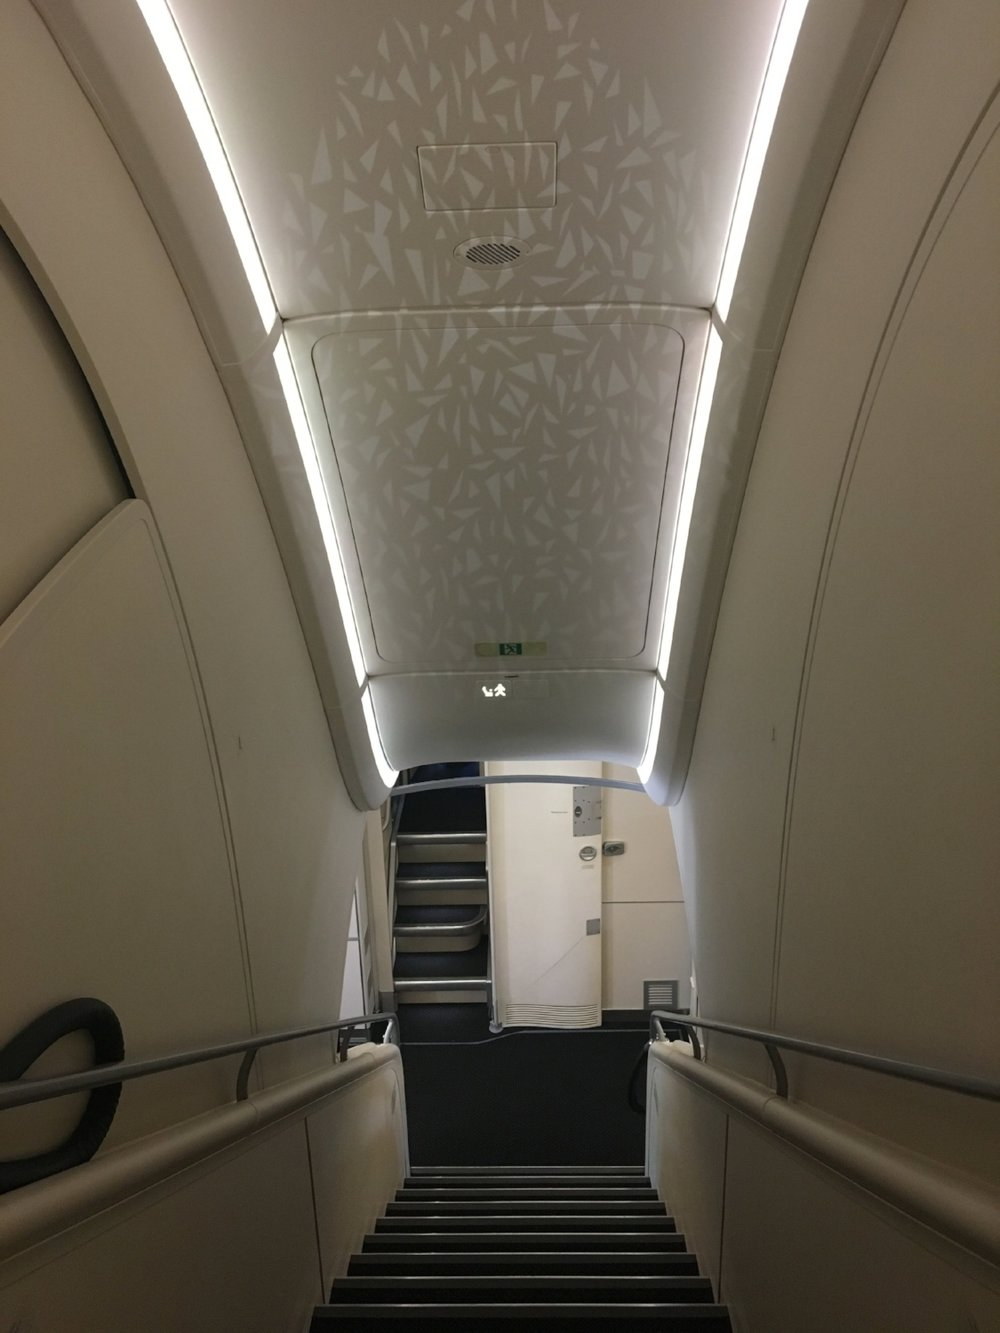 ETIHAD A380 STAIRWELL